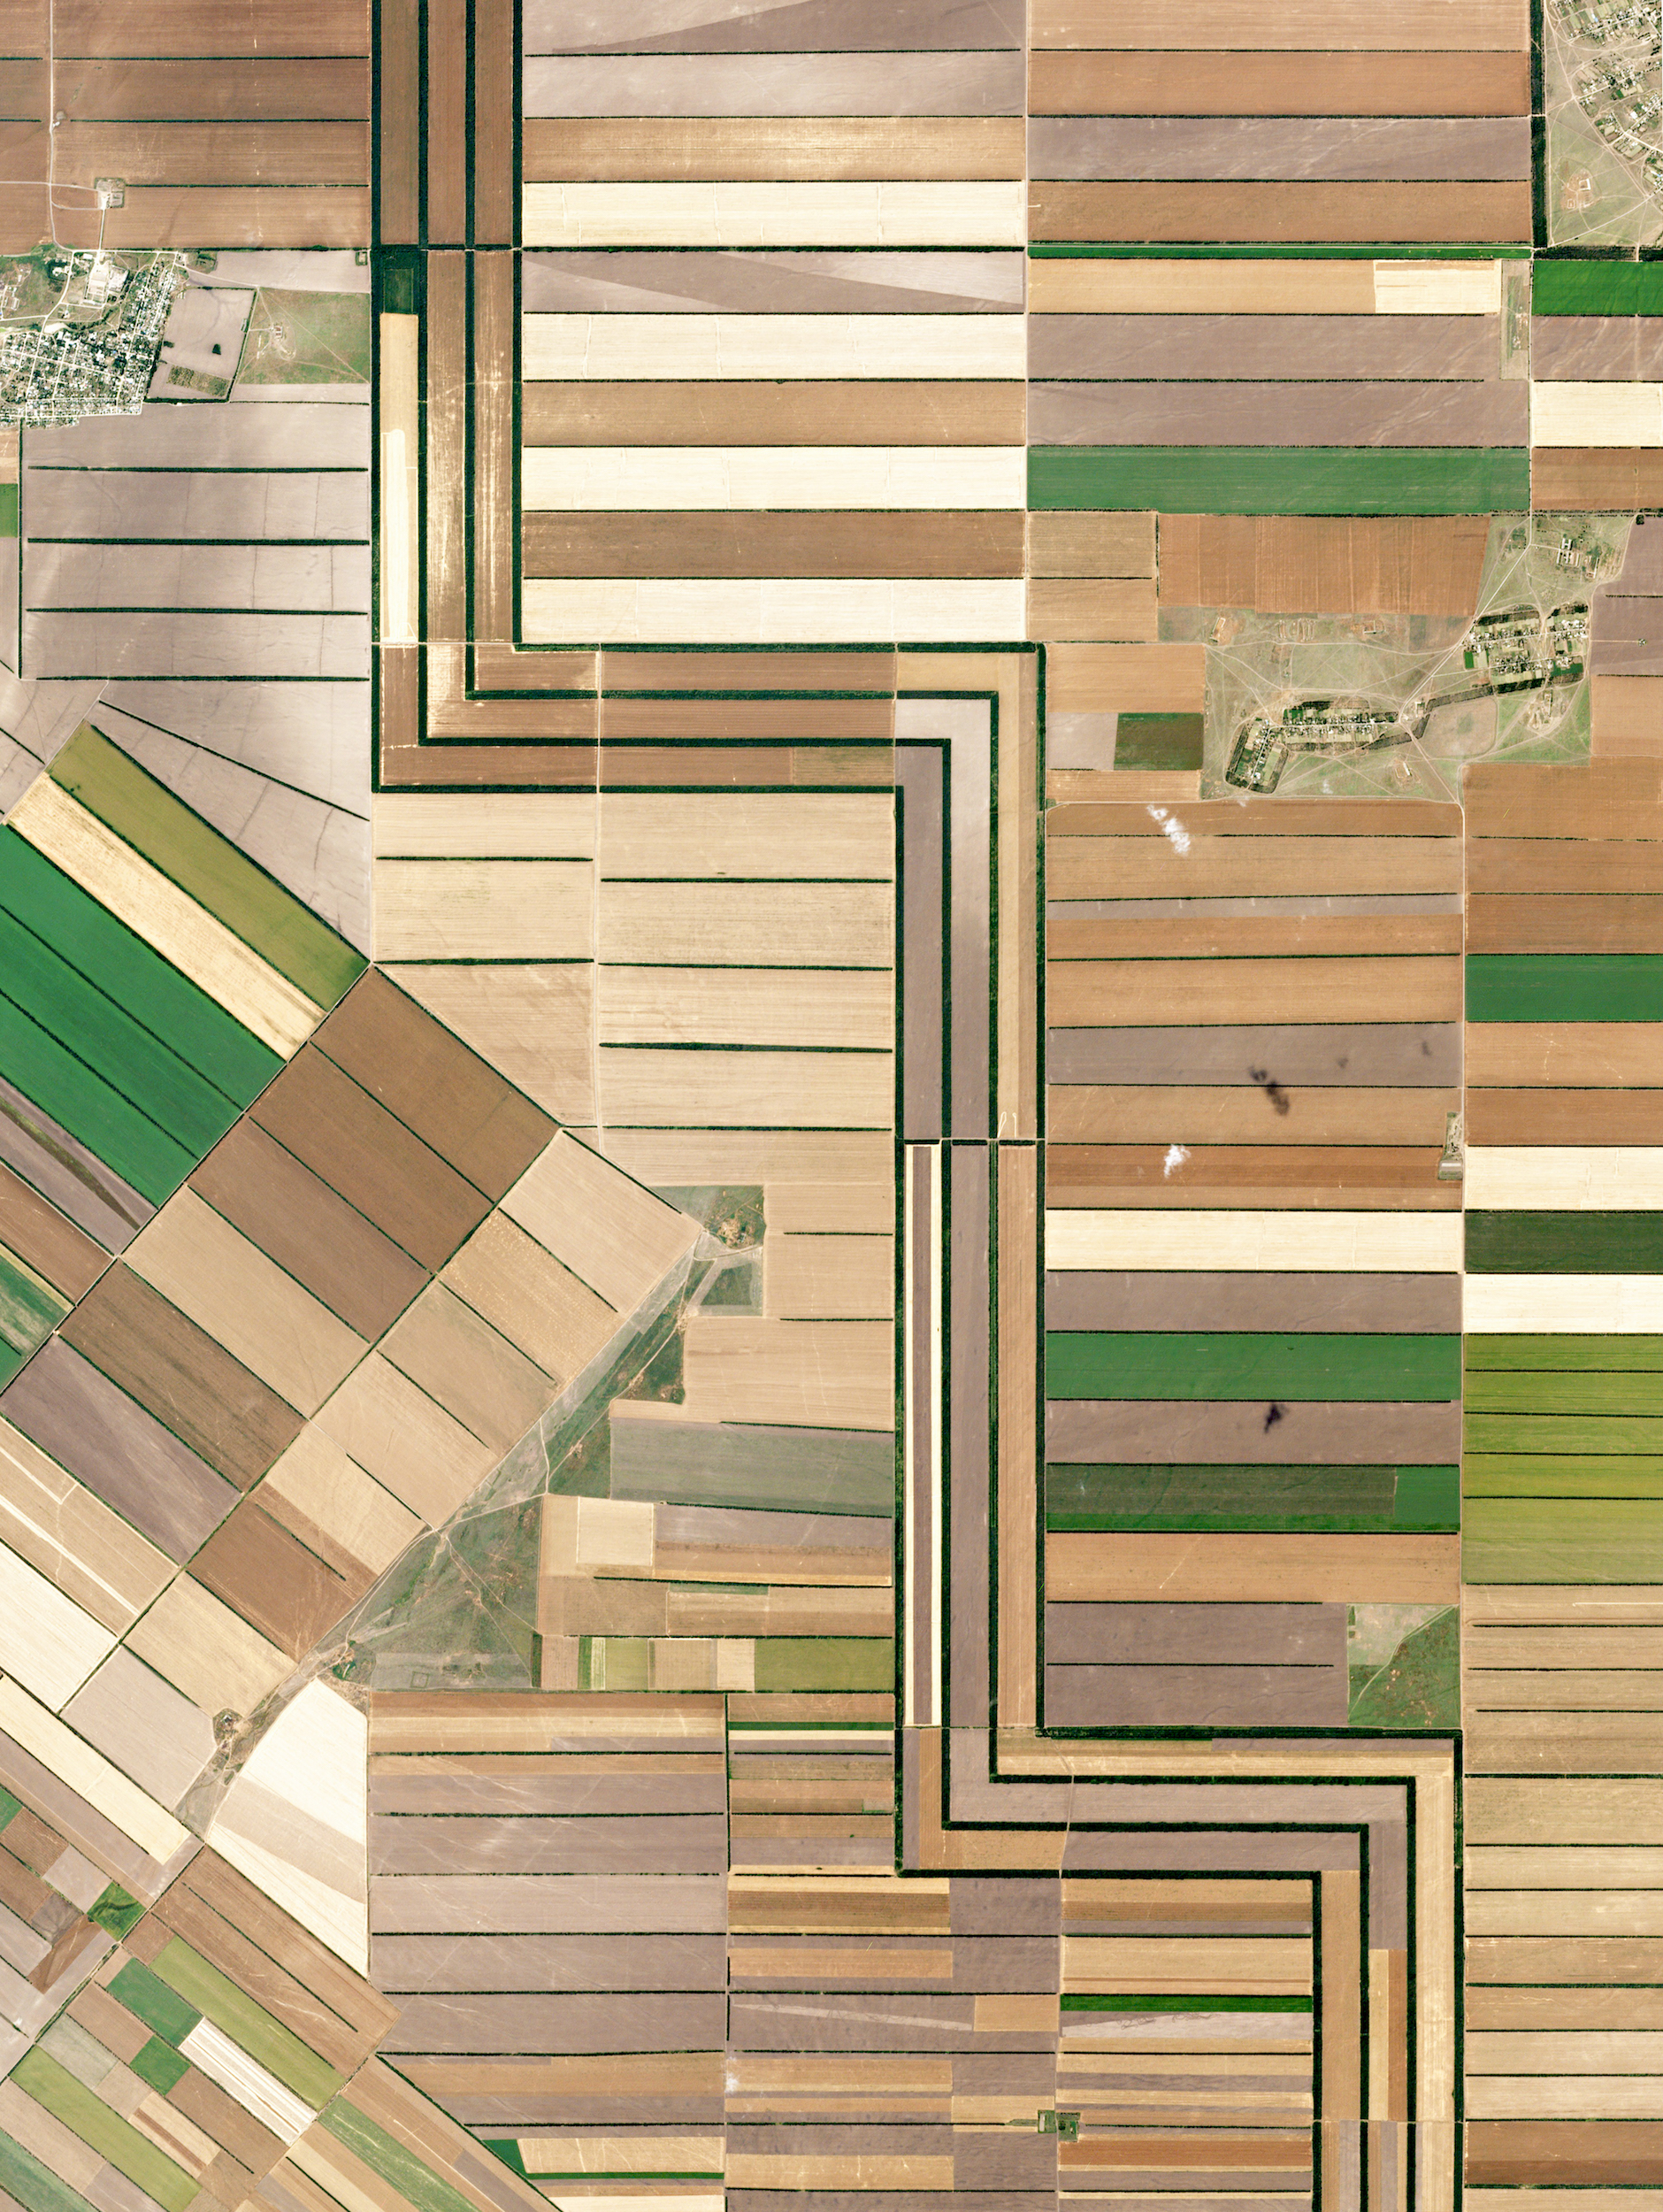 1/19/2017  Agriculture development   Stavrapol Krai, Russia   45.4654287, 43.6128532    Agricultural development in Stavrapol Krai, Russia is made possible with water that travels down from the Caucasus Mountains. The region's temperate climate supports grape and grain crops.  Source imagery: Planet